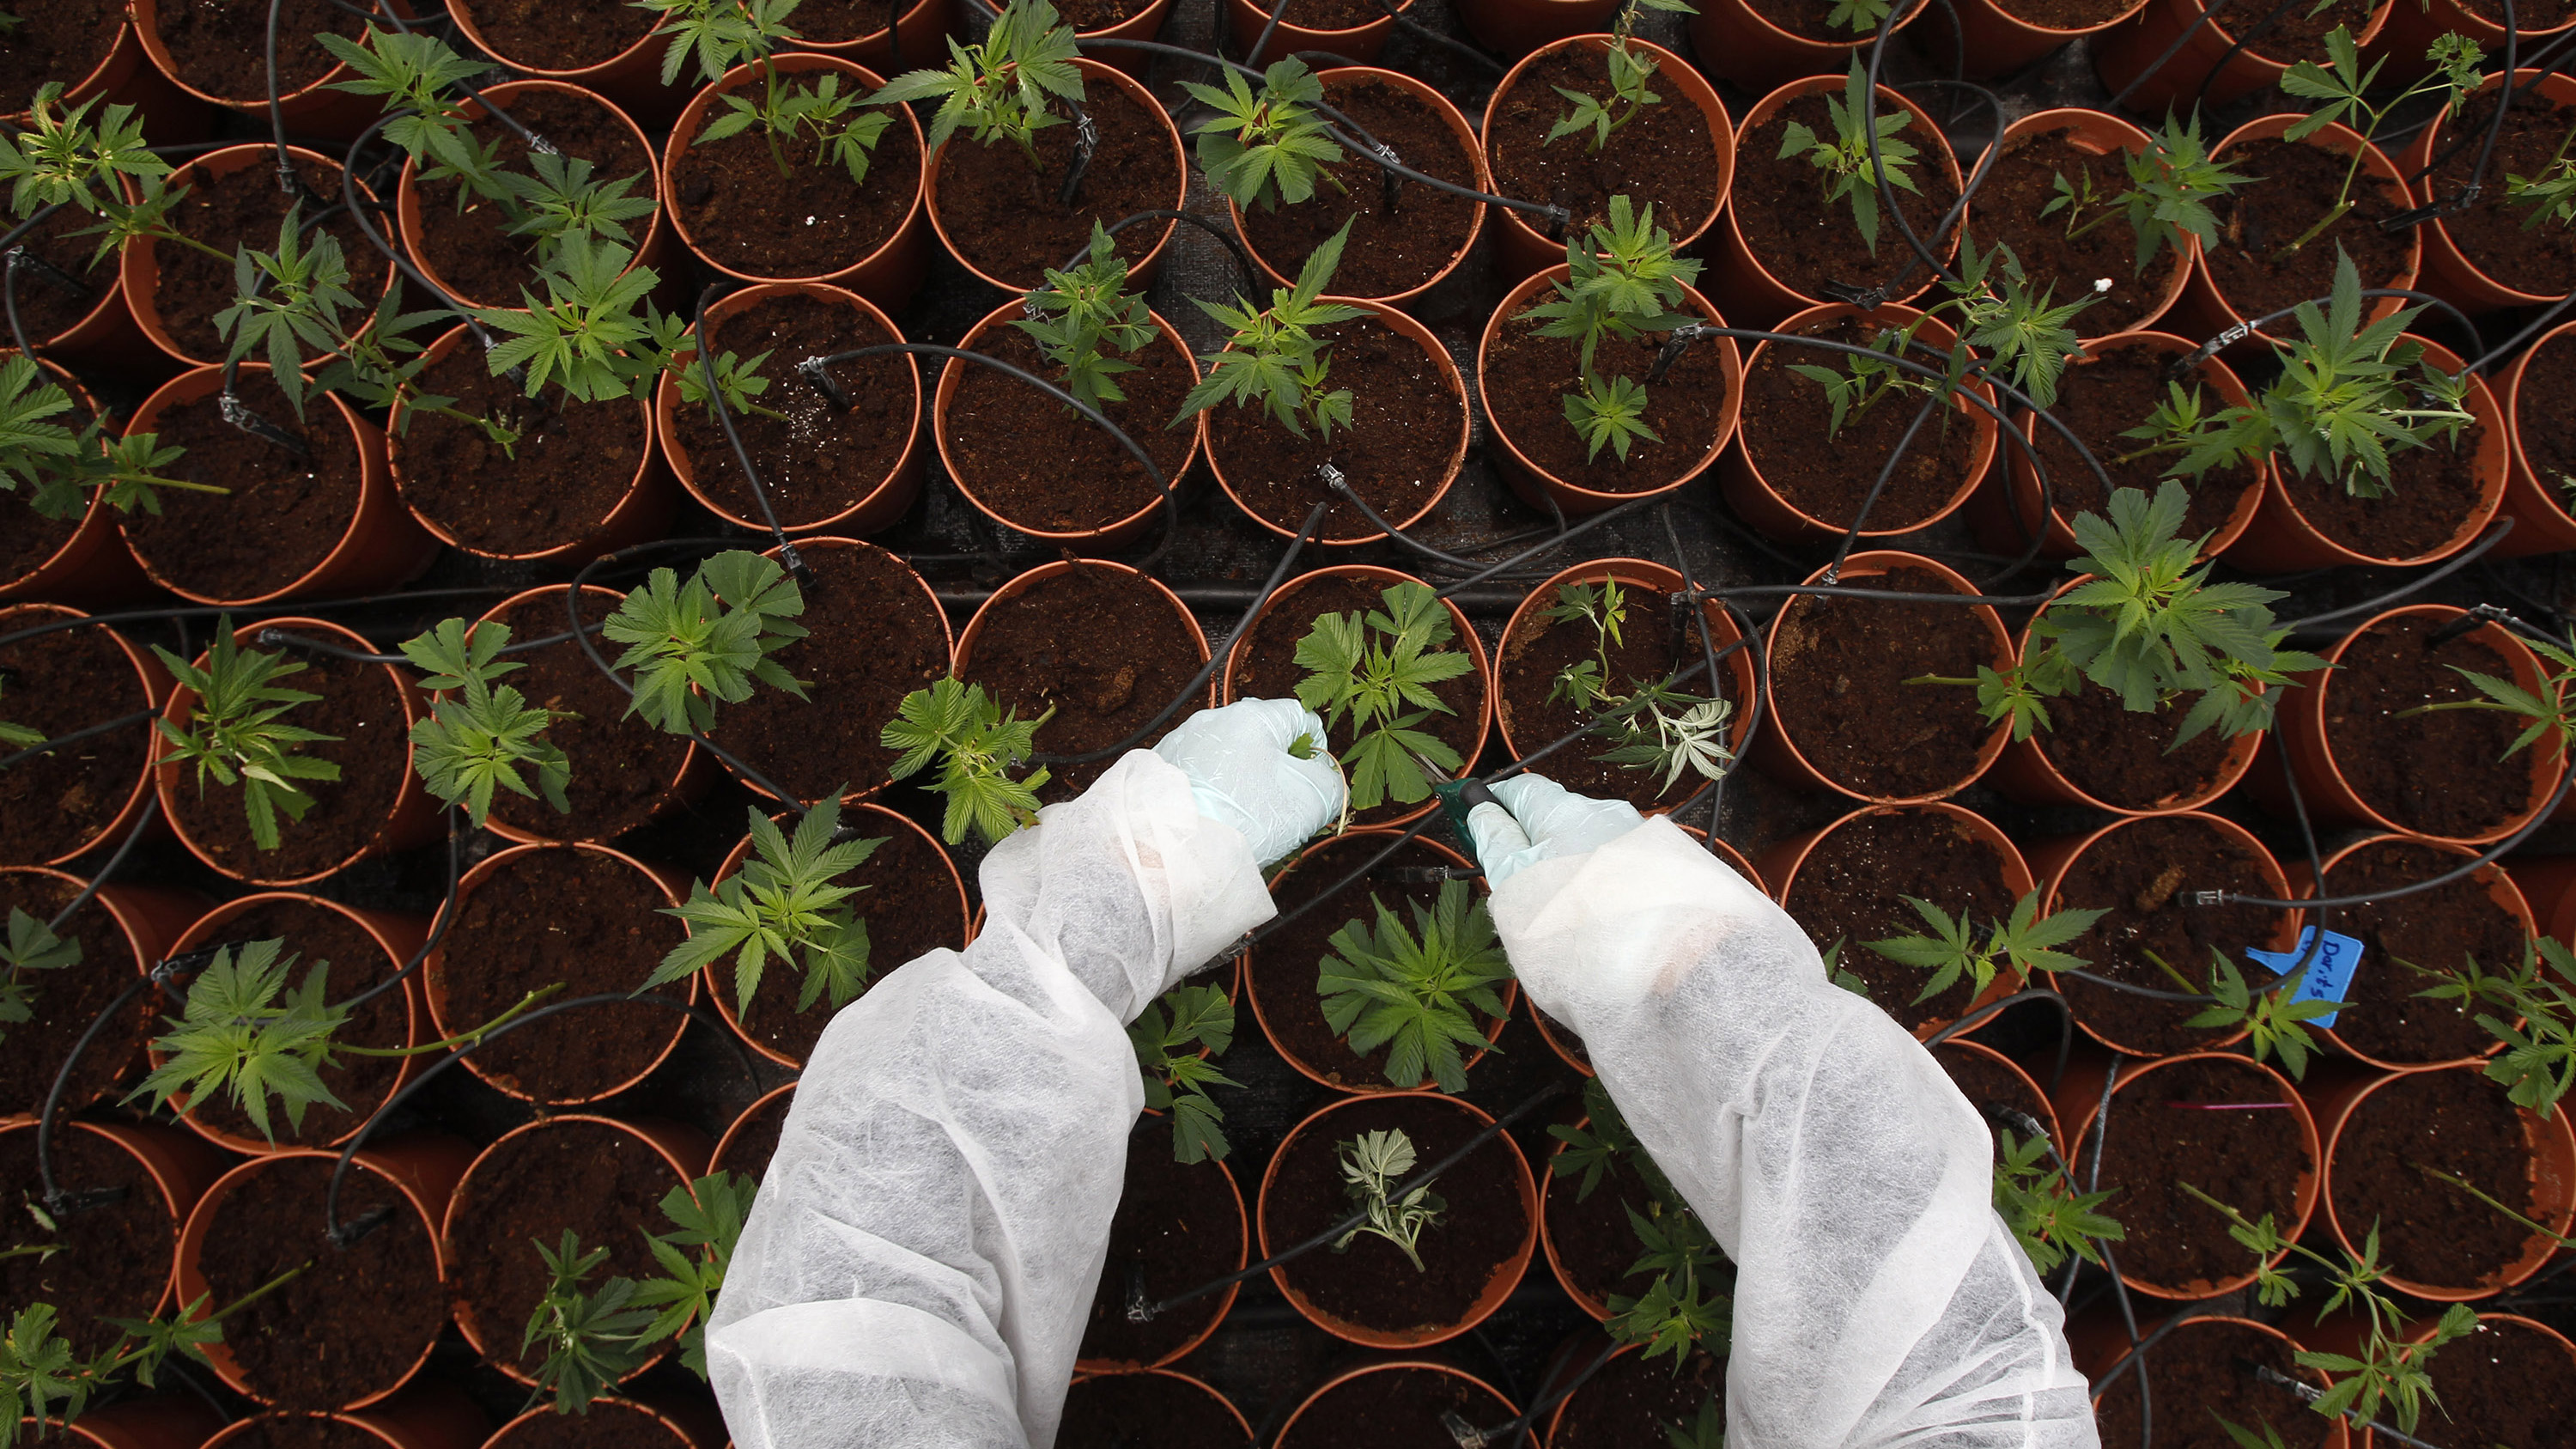 A worker tends to cannabis plants at a plantation near the northern Israeli city of Safed June 11, 2012. It is here, at a medical marijuana plantation atop the hills of the Galilee, where researchers say they have developed marijuana that can be used to ease the symptoms of some ailments without getting patients high. Picture taken June 11, 2012. REUTERS/Baz Ratner (ISRAEL - Tags: HEALTH DRUGS SOCIETY TPX IMAGES OF THE DAY) - RTR34J7Q